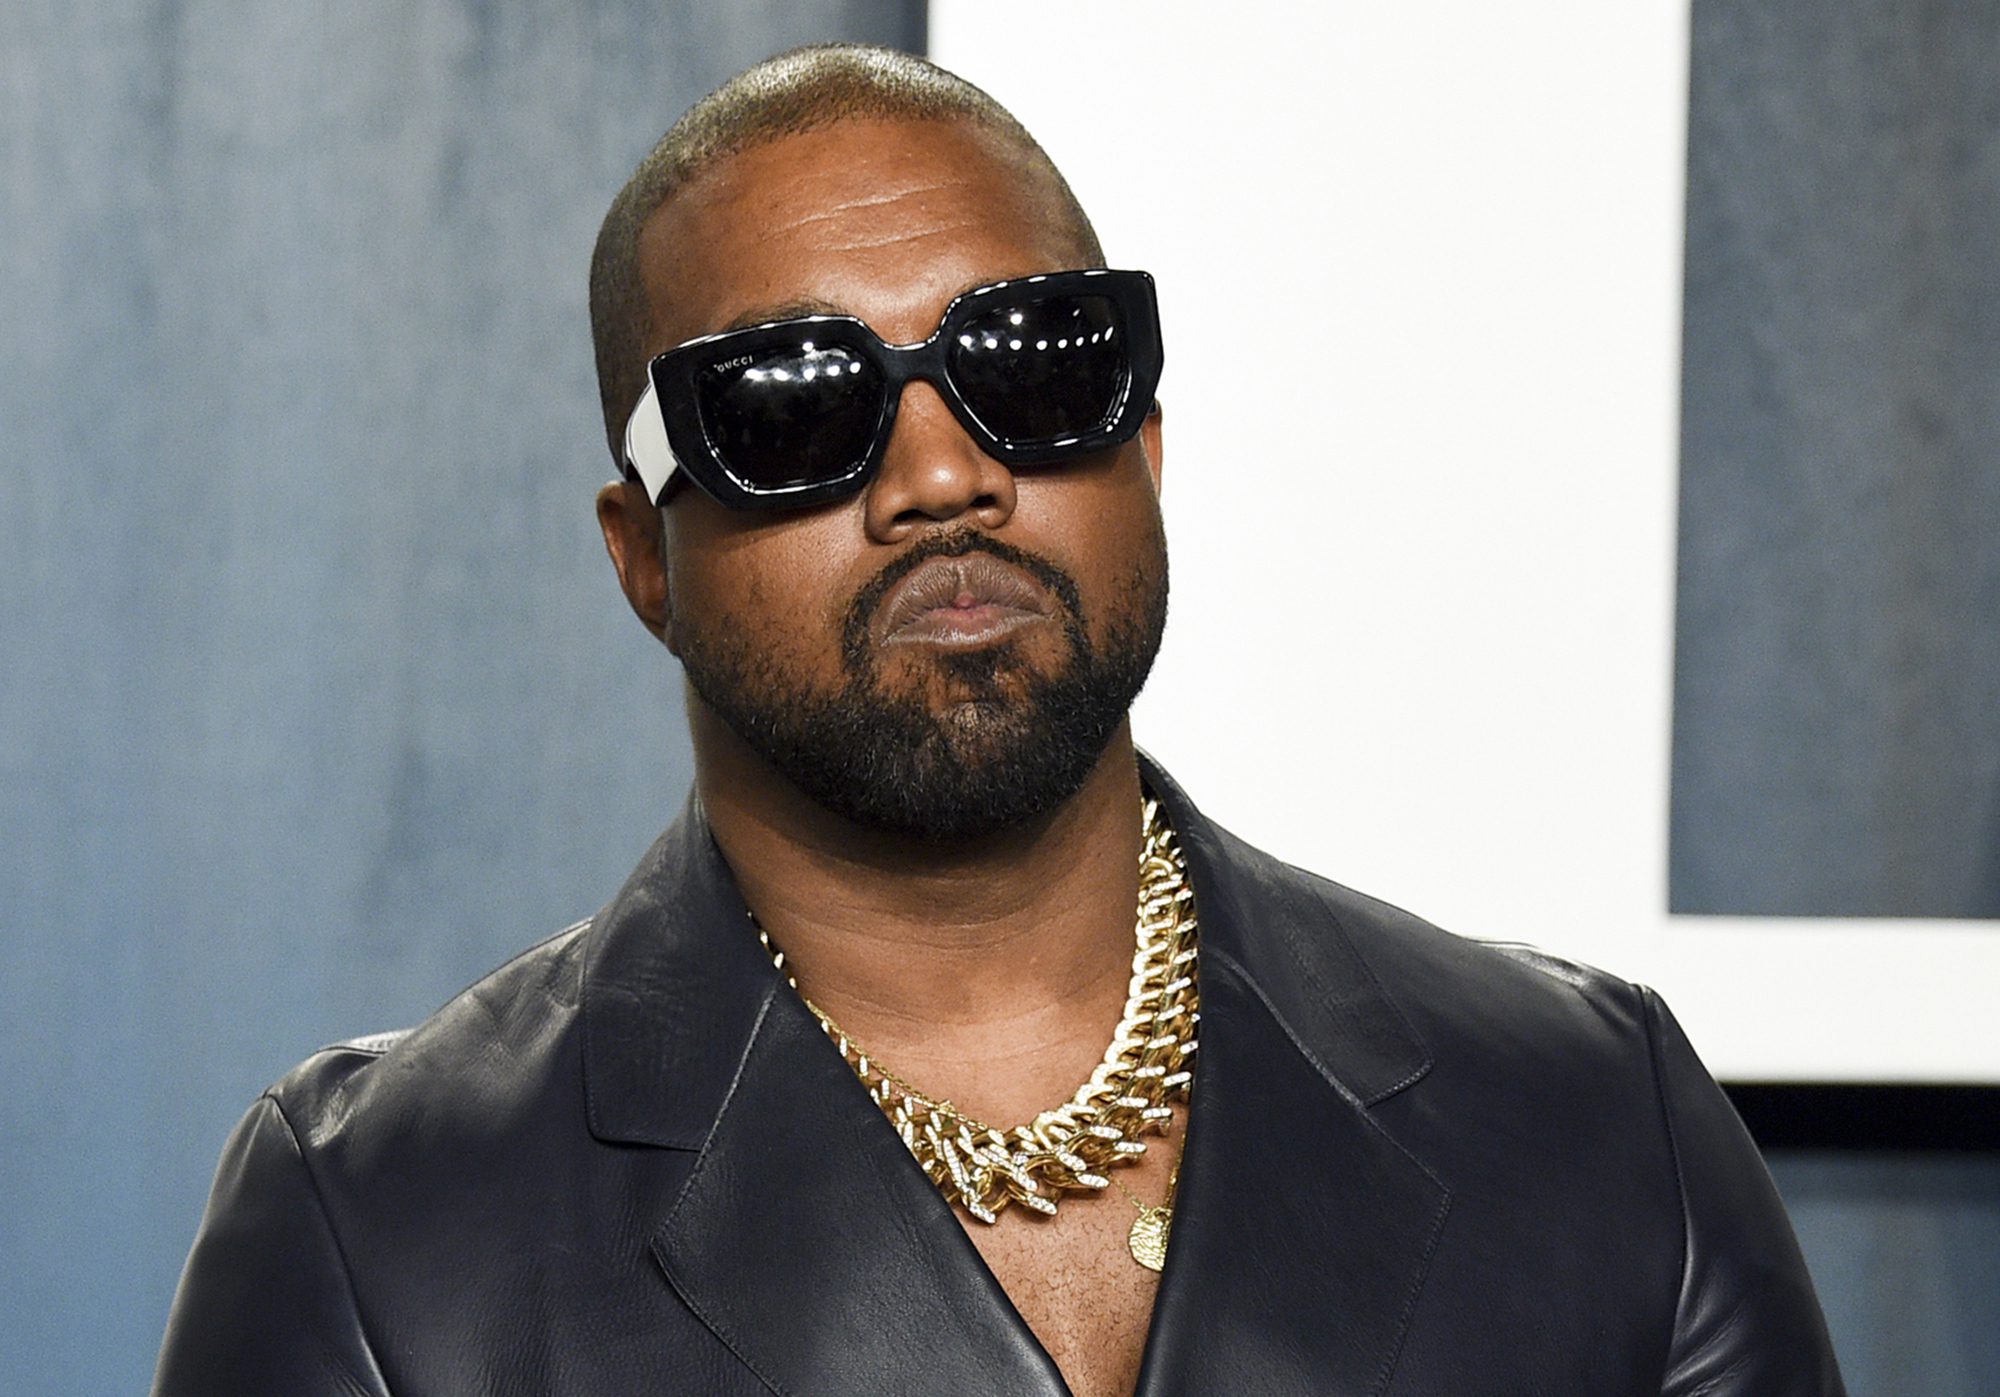 Kanye West arrives at the Vanity Fair Oscar Party in Beverly Hills, Calif., on Feb. 9, 2020. (Evan Agostini/Invision/AP, File)